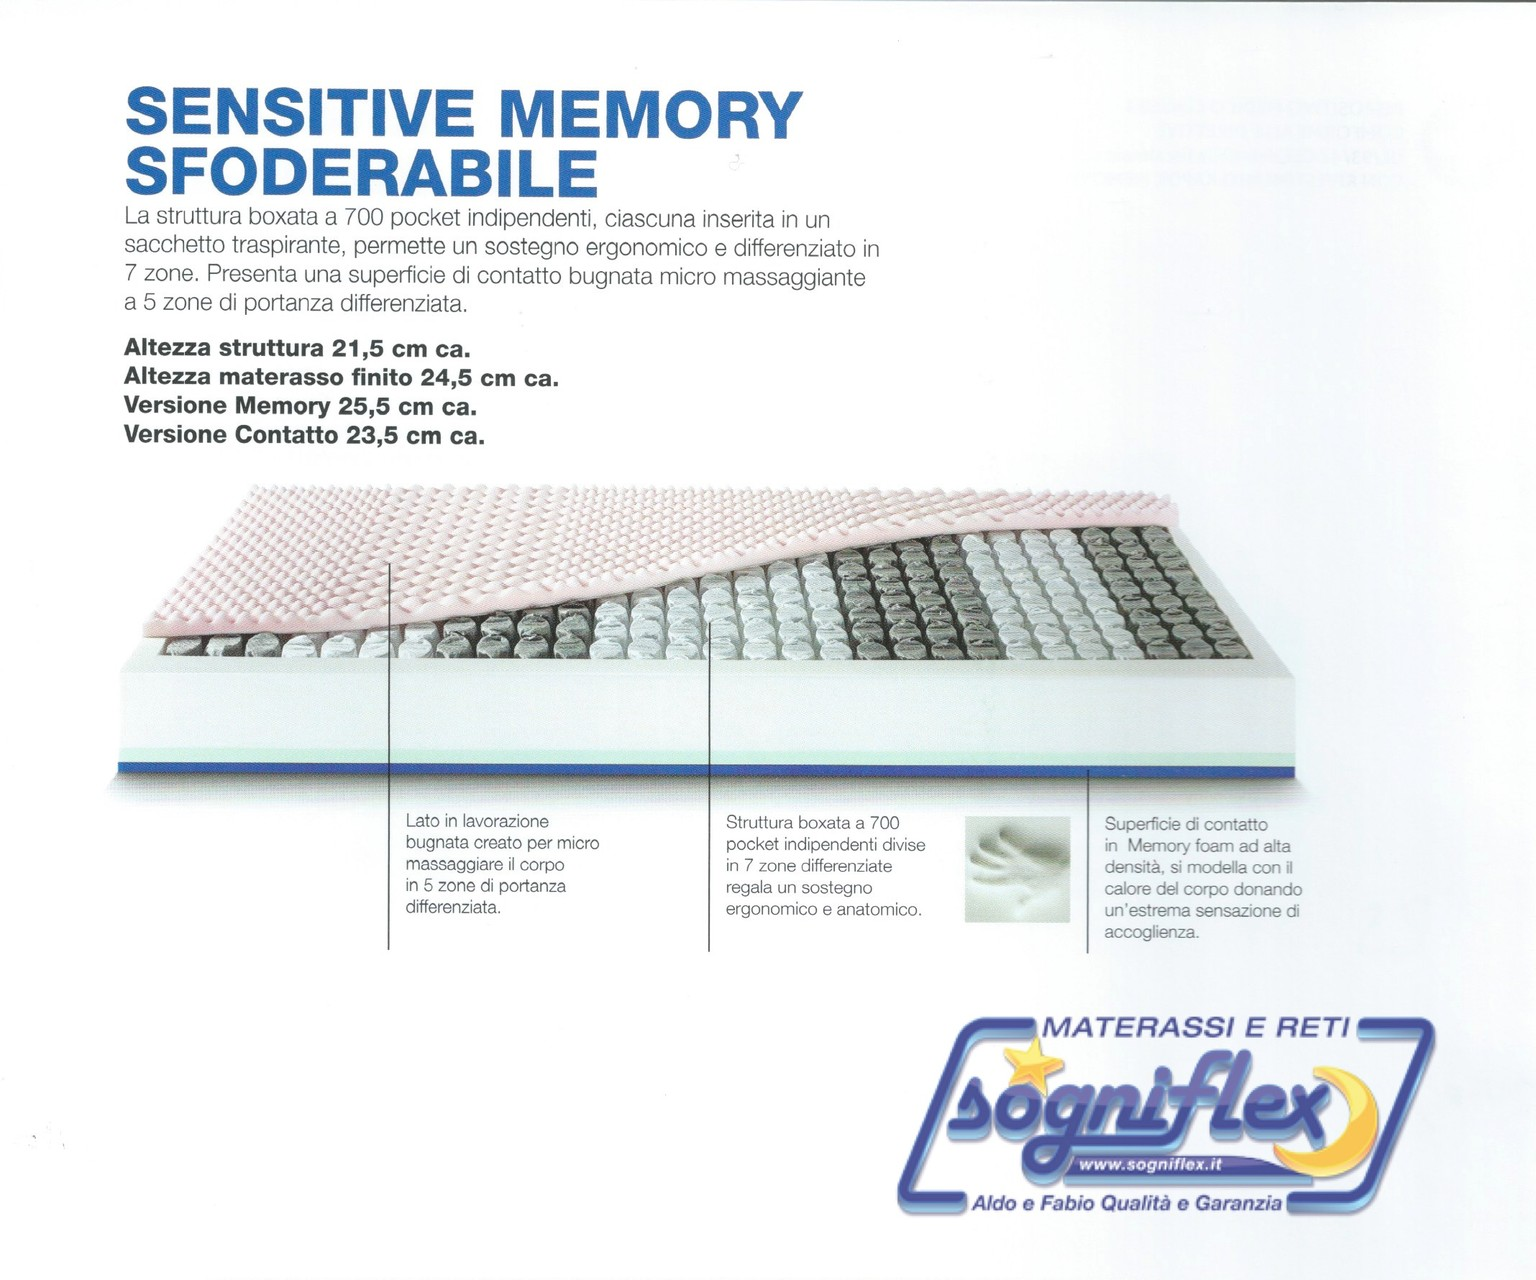 Materasso Sensitive Memory Sfoderabile